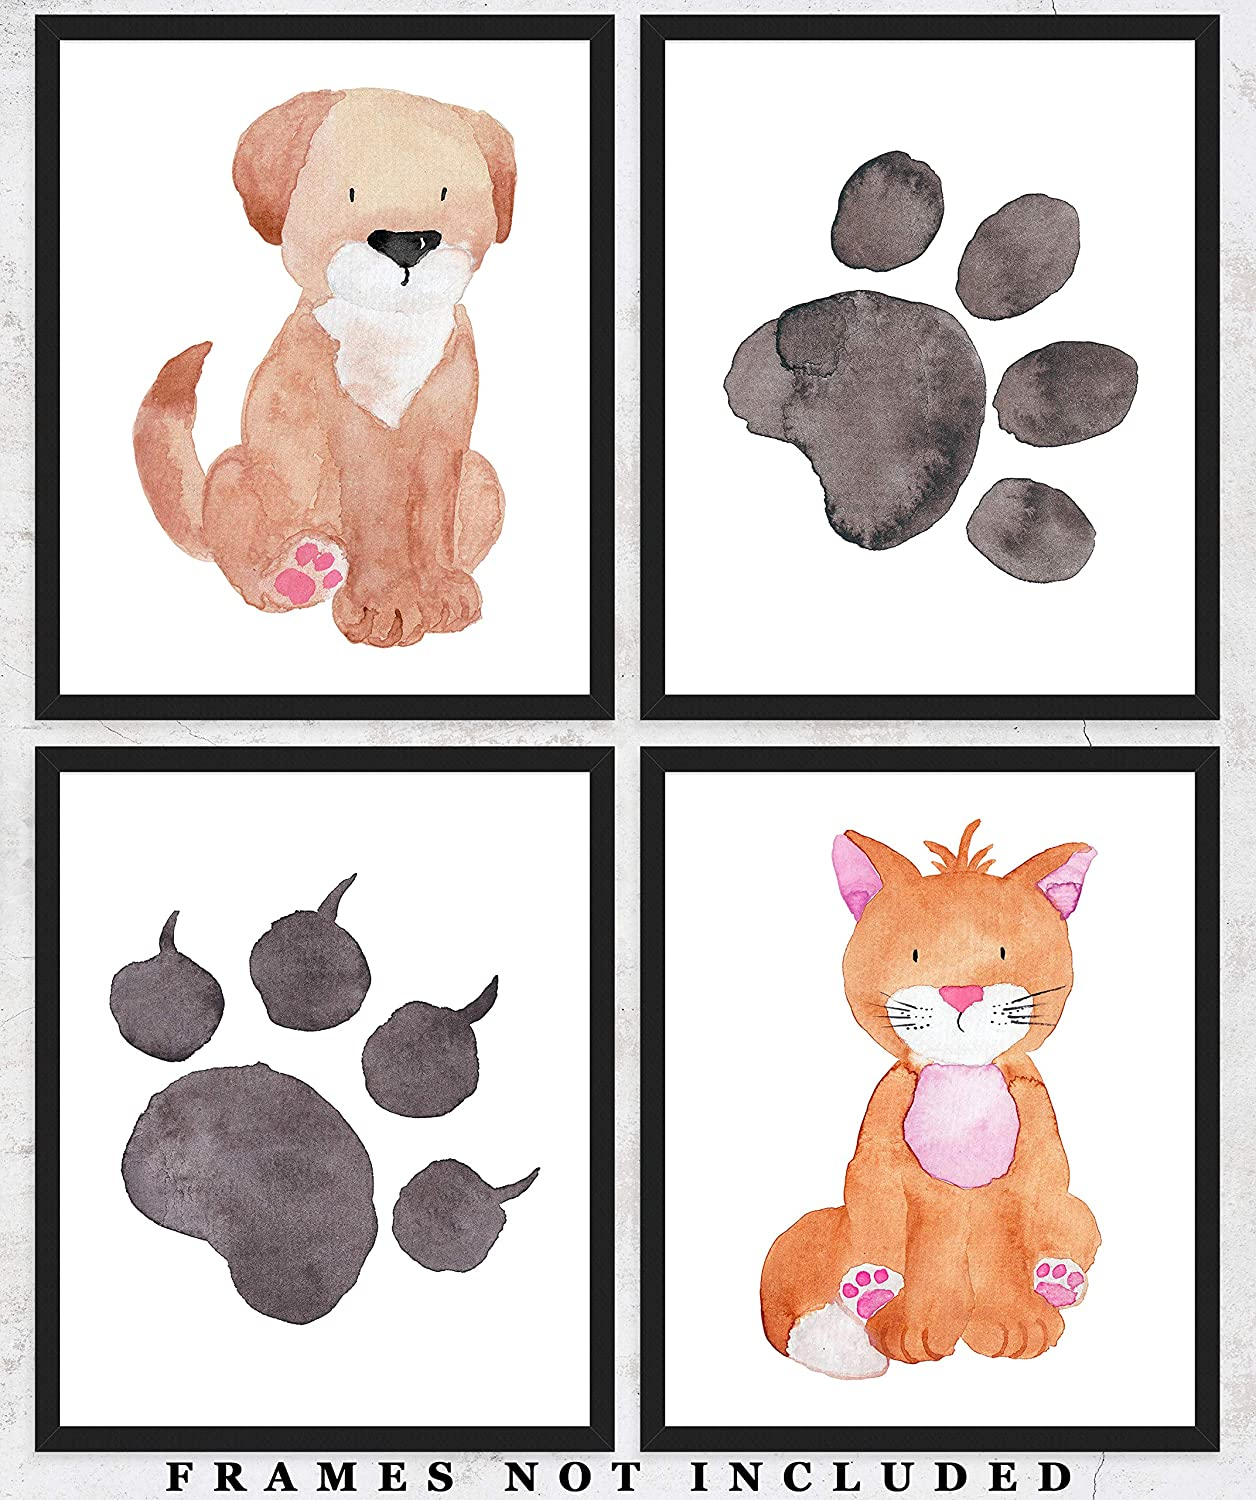 Cats and Dogs - Nursery Wall Decor Art Prints: Set of Four (8x10) Unframed Animal Pictures - Great Gift Idea for Any Nursery and Kids Room Under $20